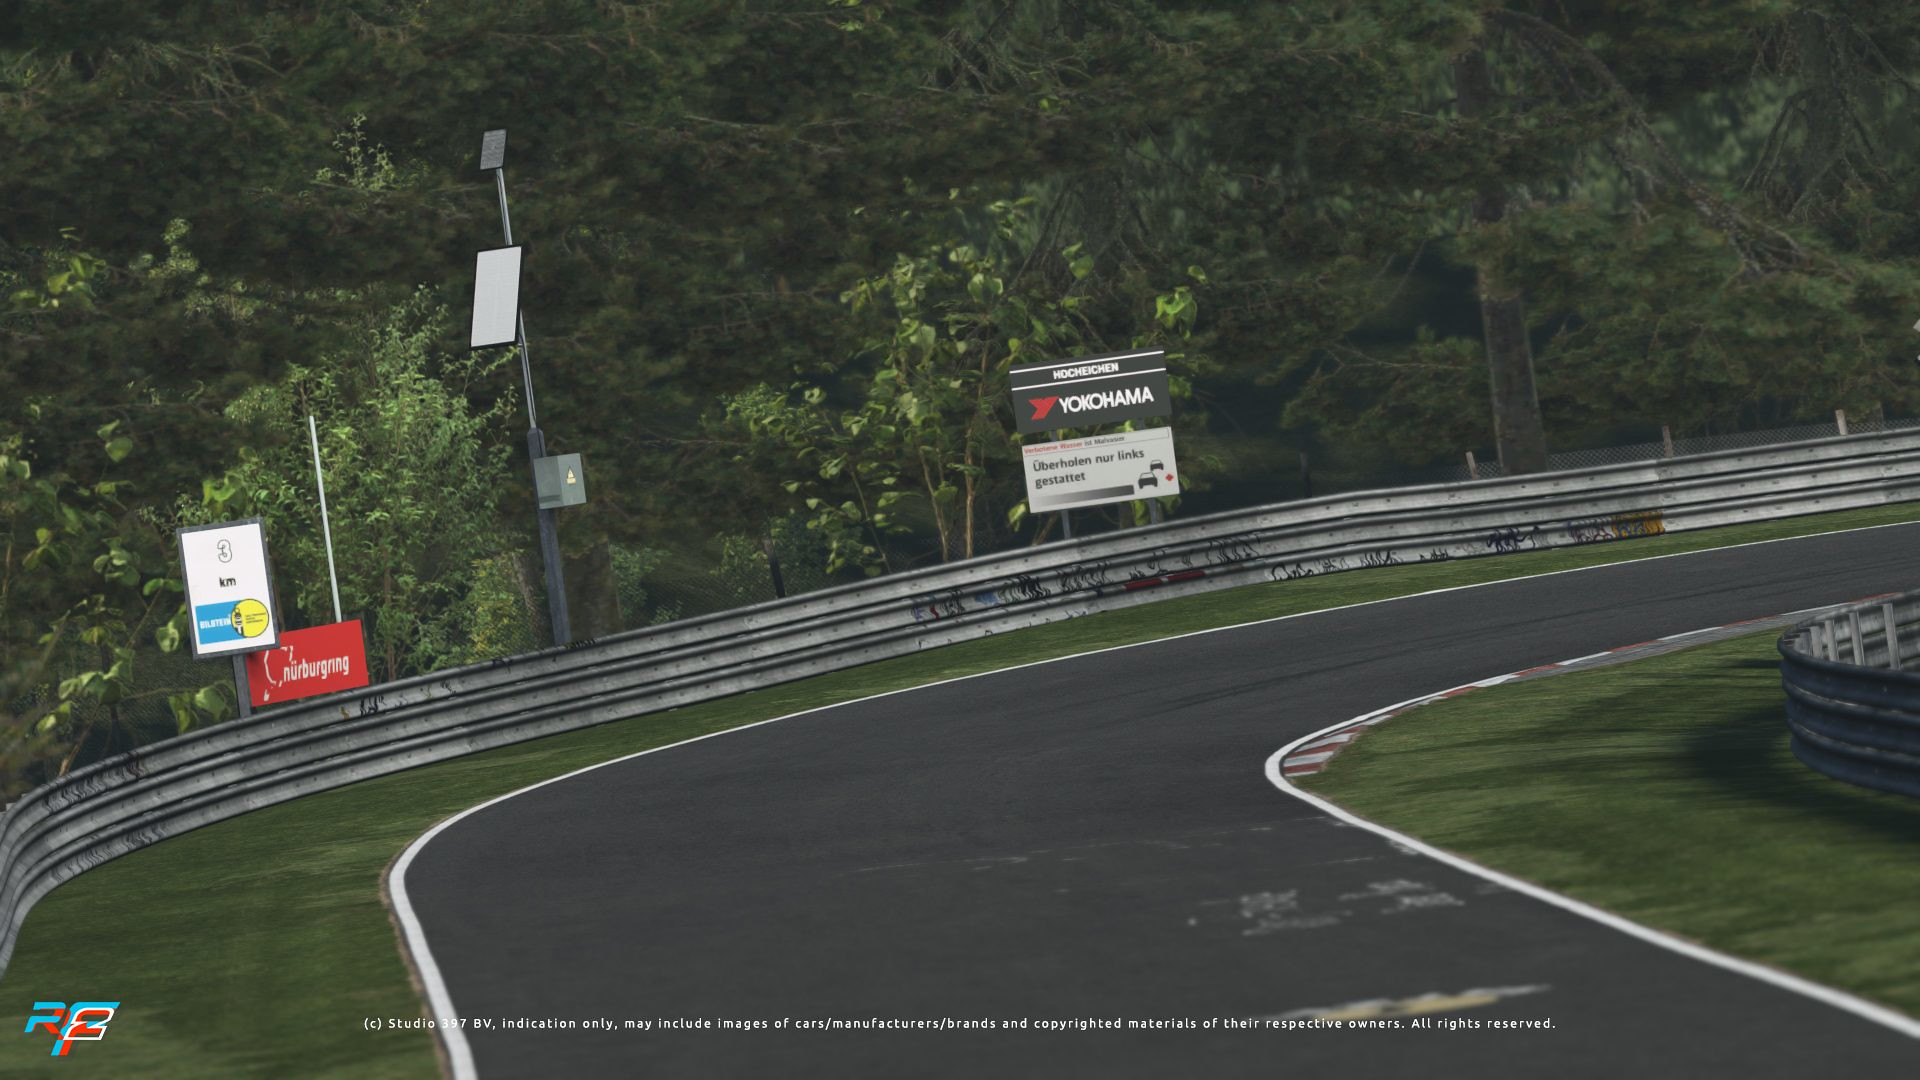 nordschleife_guide_05-1920x1080